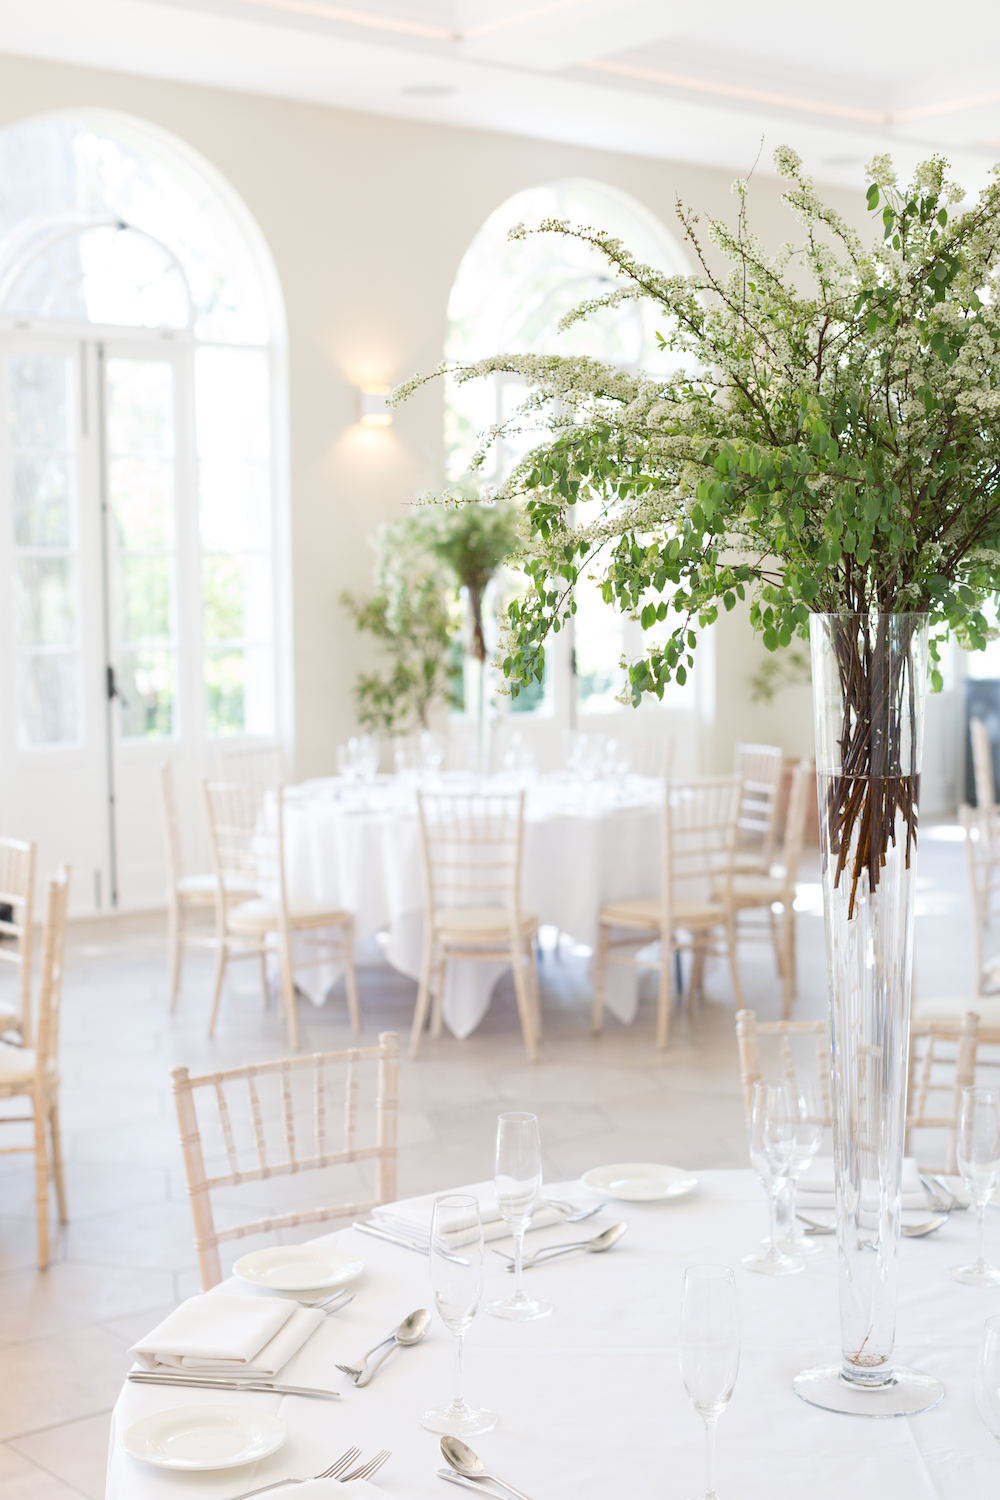 45 | Deer Park | Sarah Hannam Photography | Devon Wedding Venue | Lamare London.jpg